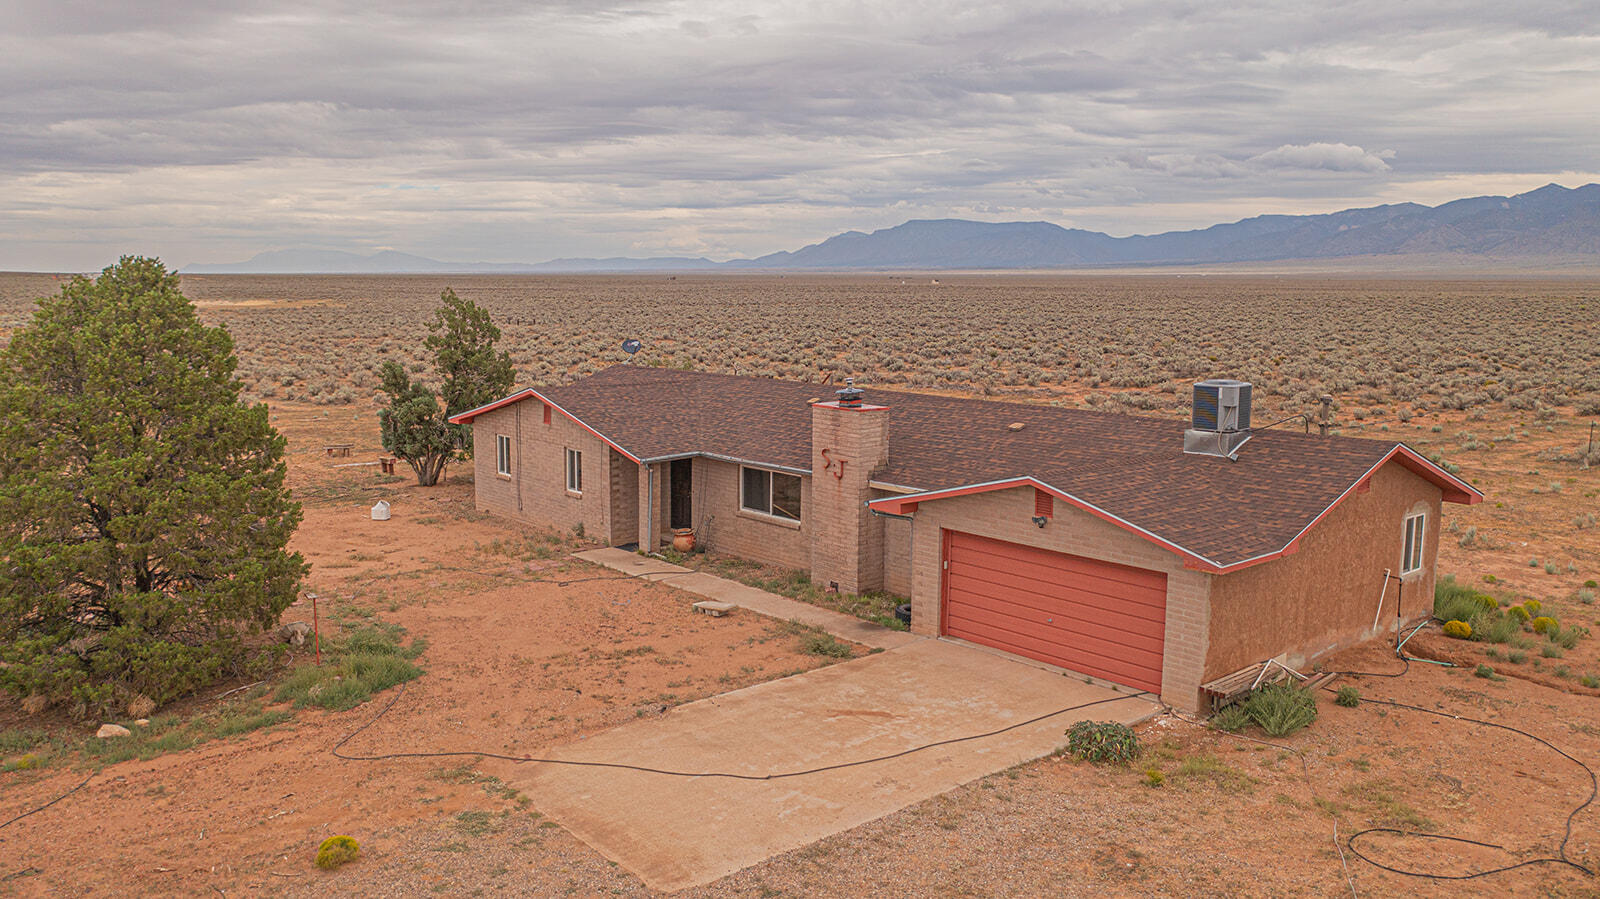 Custom home that sits on 10.82 acres. (Property can be split and build another home on it). The views of the Manzano mountains are gorgeous. Open floorplan that has a large kitchen and dining connected to the family room. Bonus sun room attached to home, Bonus office or bedroom or even a hobby room is another extra to this custom home. Fully fenced. Out buildings for storage. Bring the animals and enjoy the privacy. Close enough for shopping and commute but far enough away so very little noise.